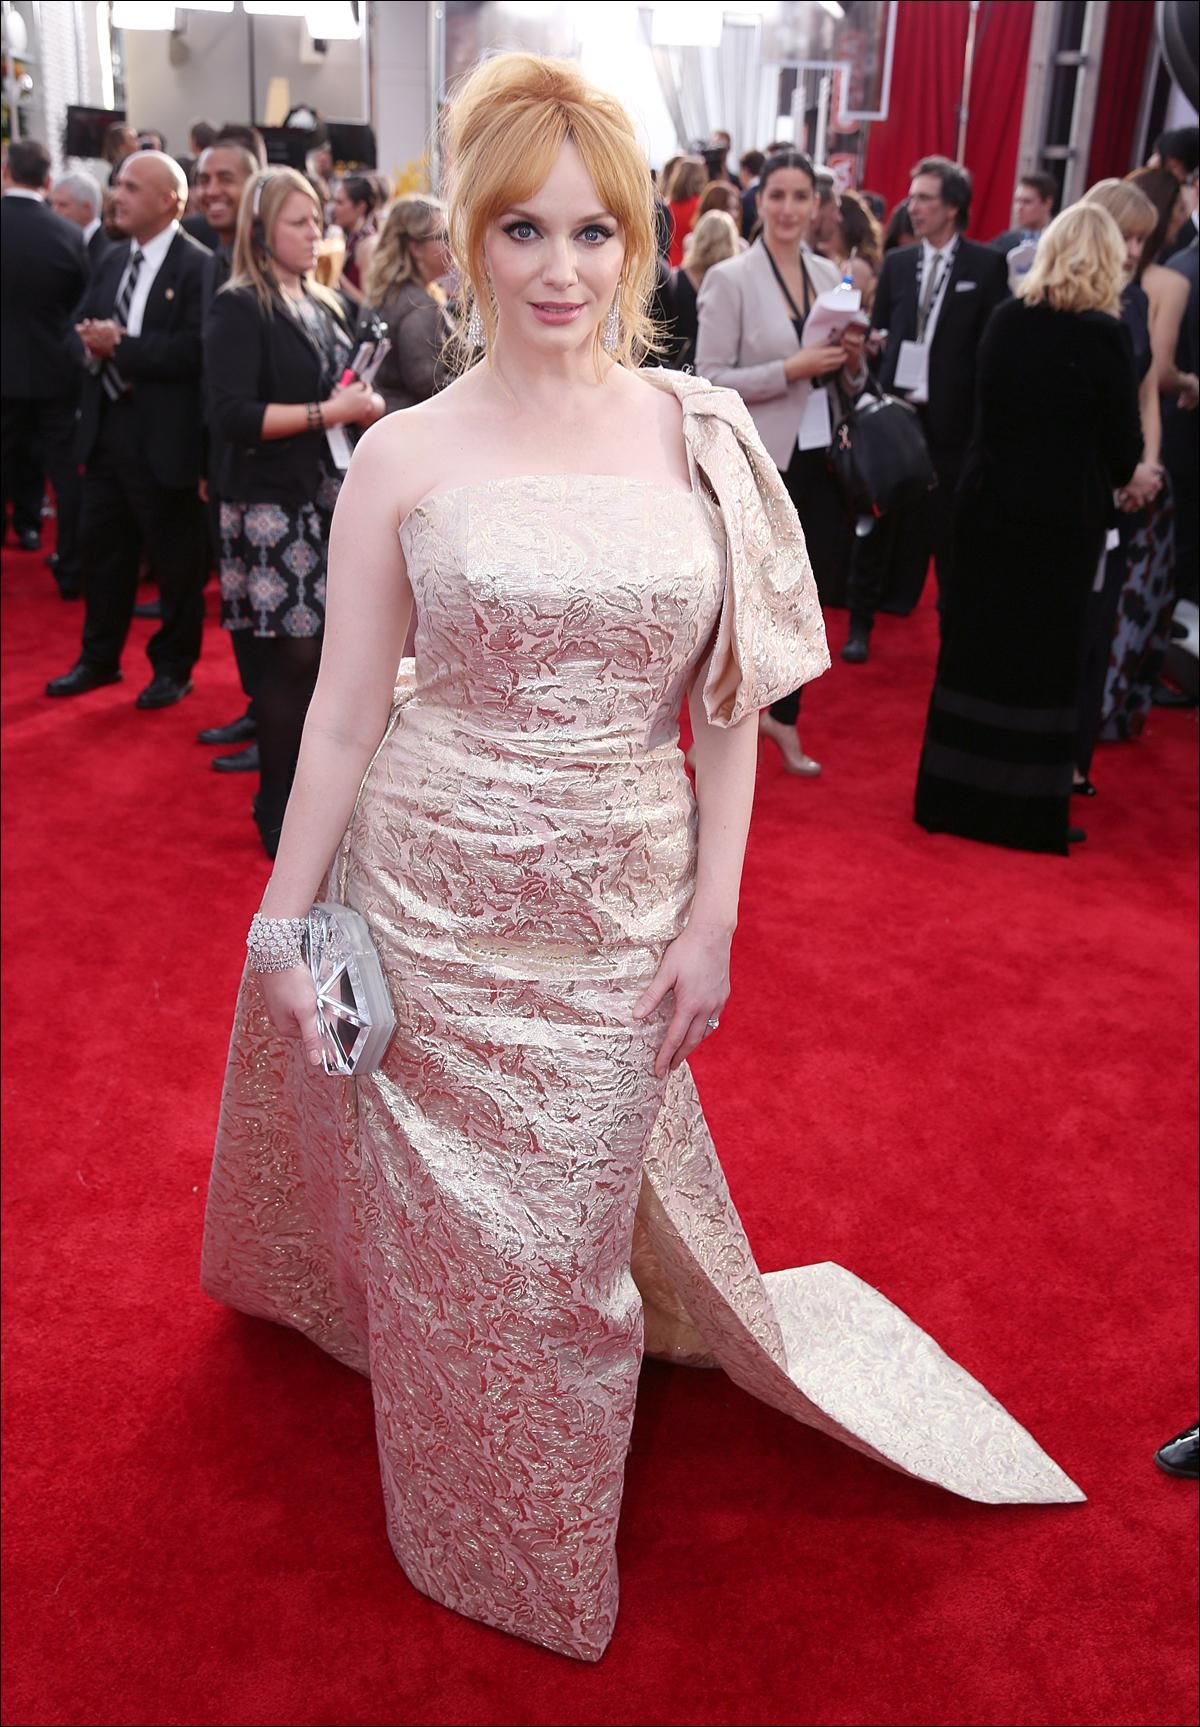 Christina Hendricks arrives at the 22nd annual Screen Actors Guild Awards at the Shrine Auditorium & Expo Hall on Saturday, Jan. 30, 2016, in Los Angeles. (Photo by Matt Sayles/Invision/AP)